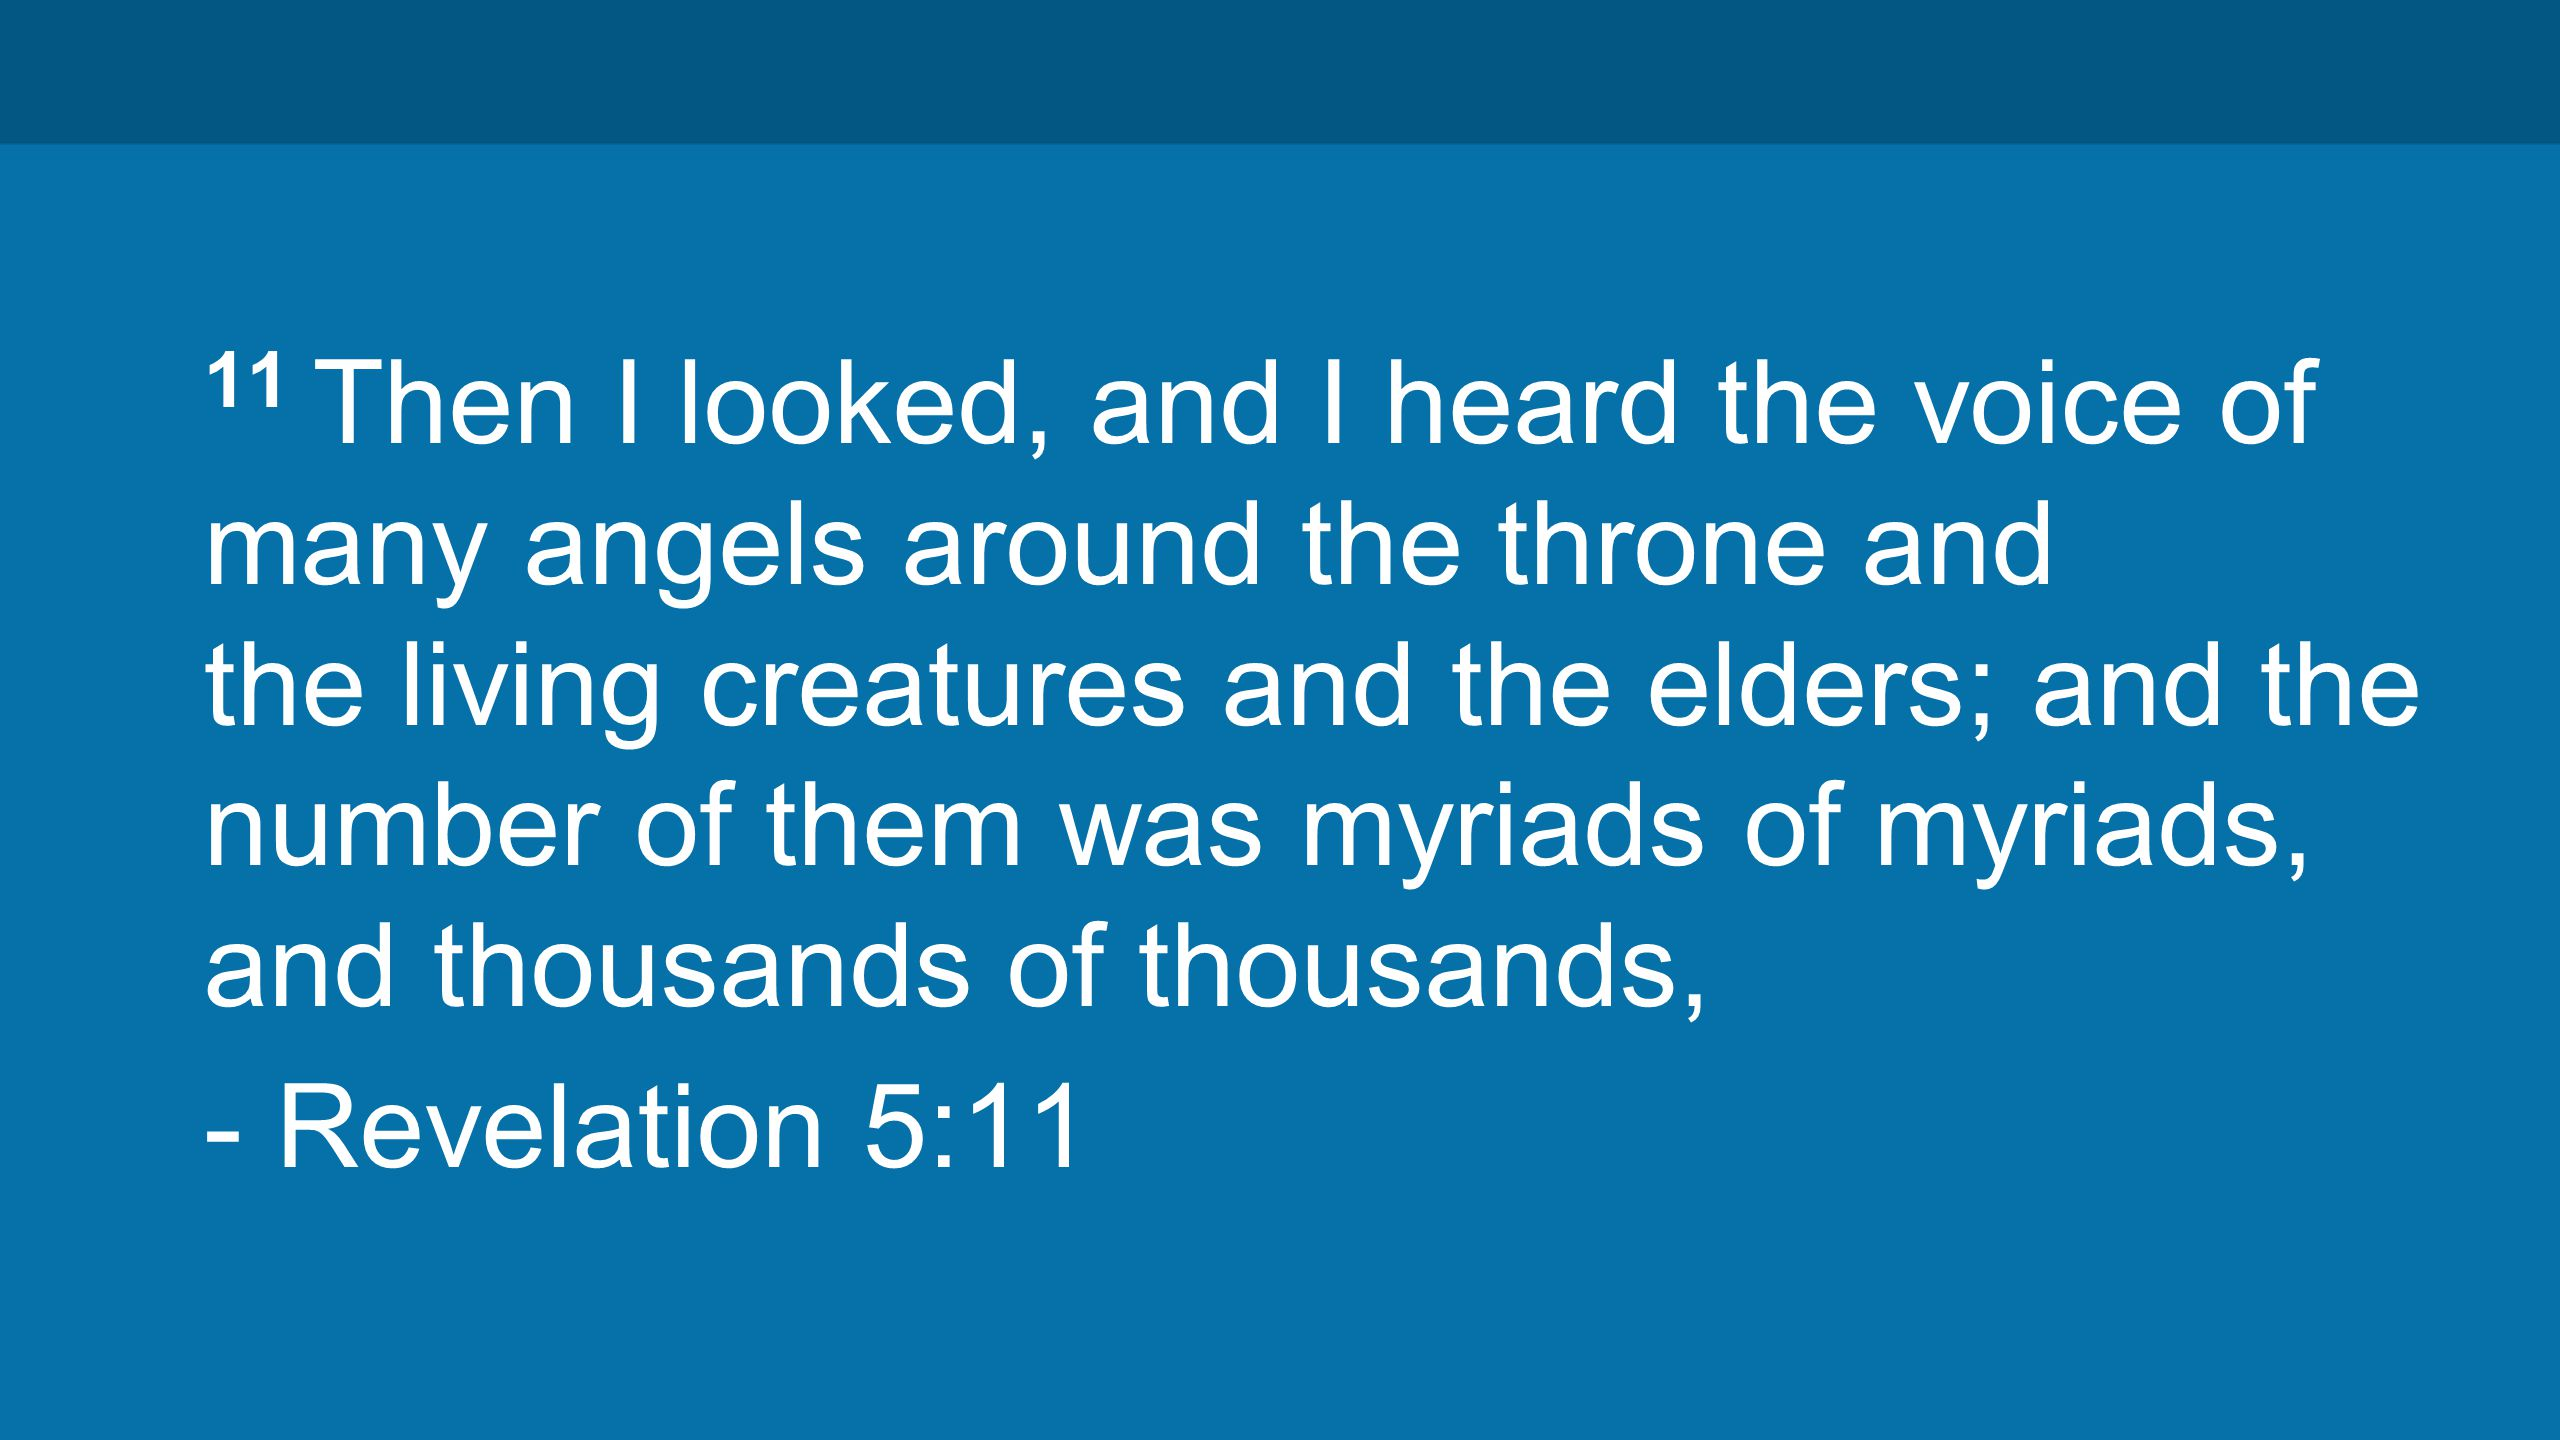 11 Then I looked, and I heard the voice of many angels around the throne and the living creatures and the elders; and the number of them was myriads of myriads, and thousands of thousands, - Revelation 5:11